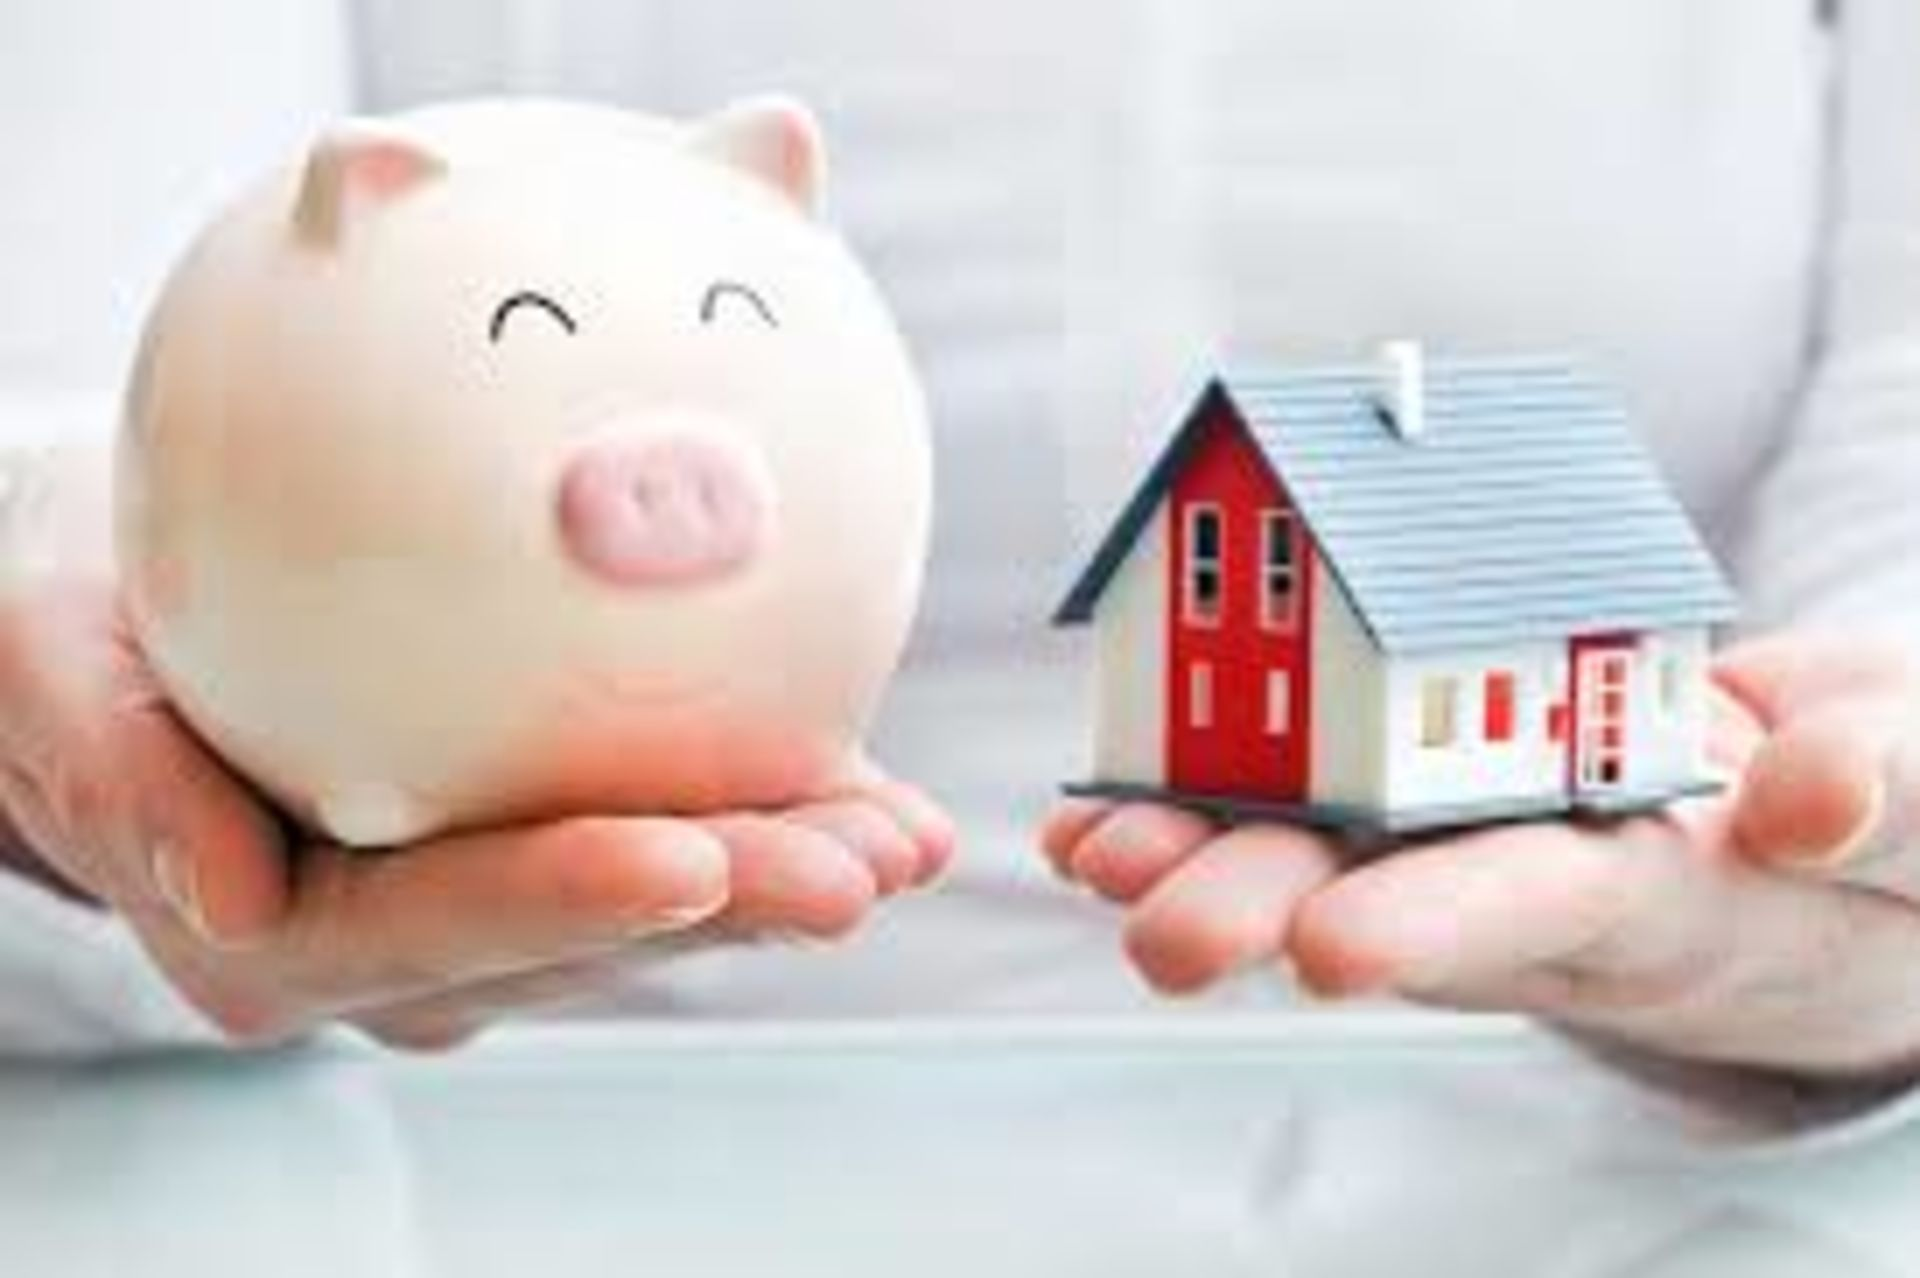 Investing in the stock market vs. owning a home